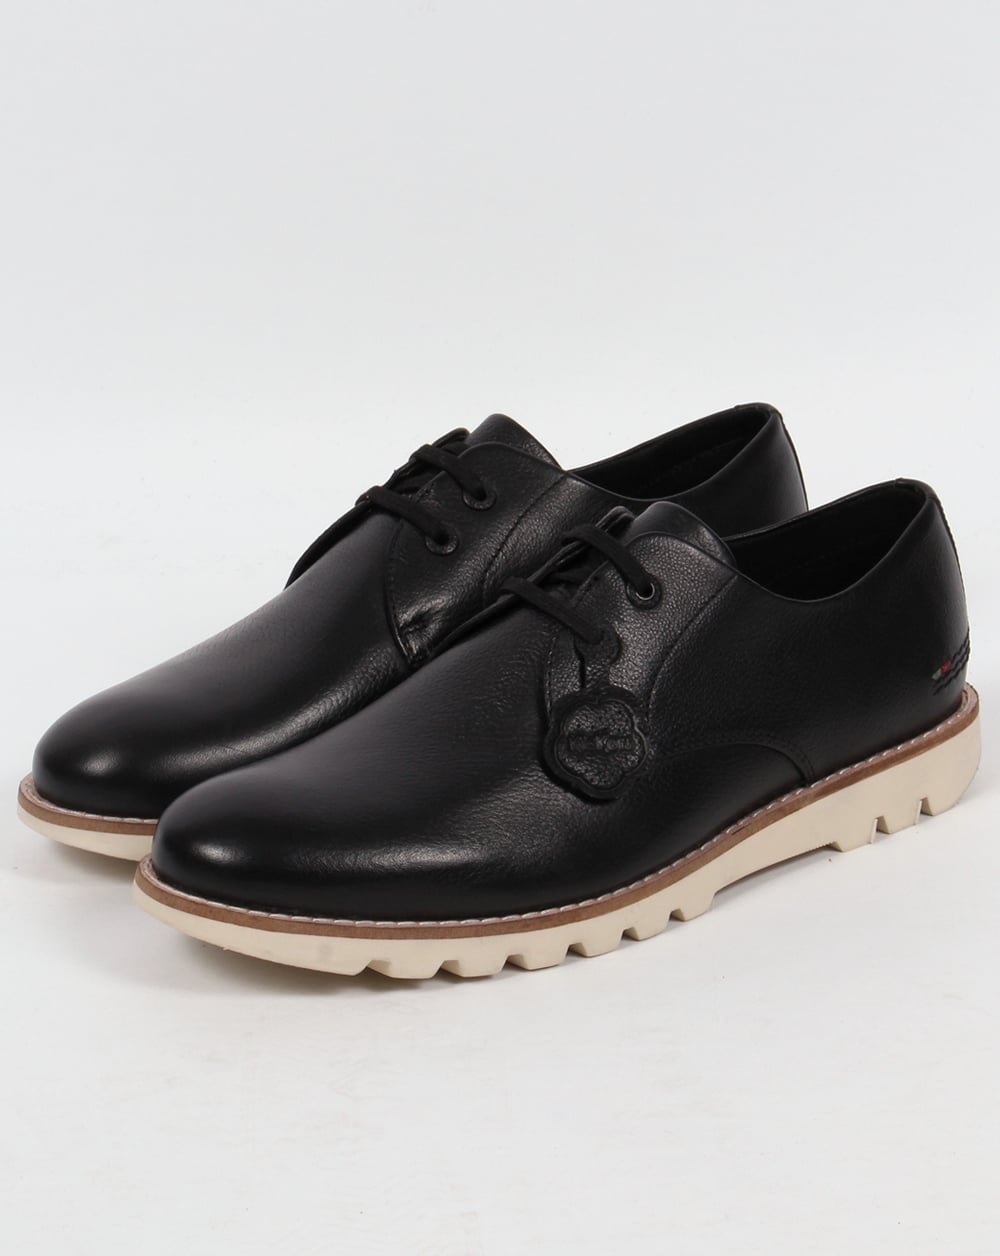 kickers kymbo derby shoes black leather smart formal mens